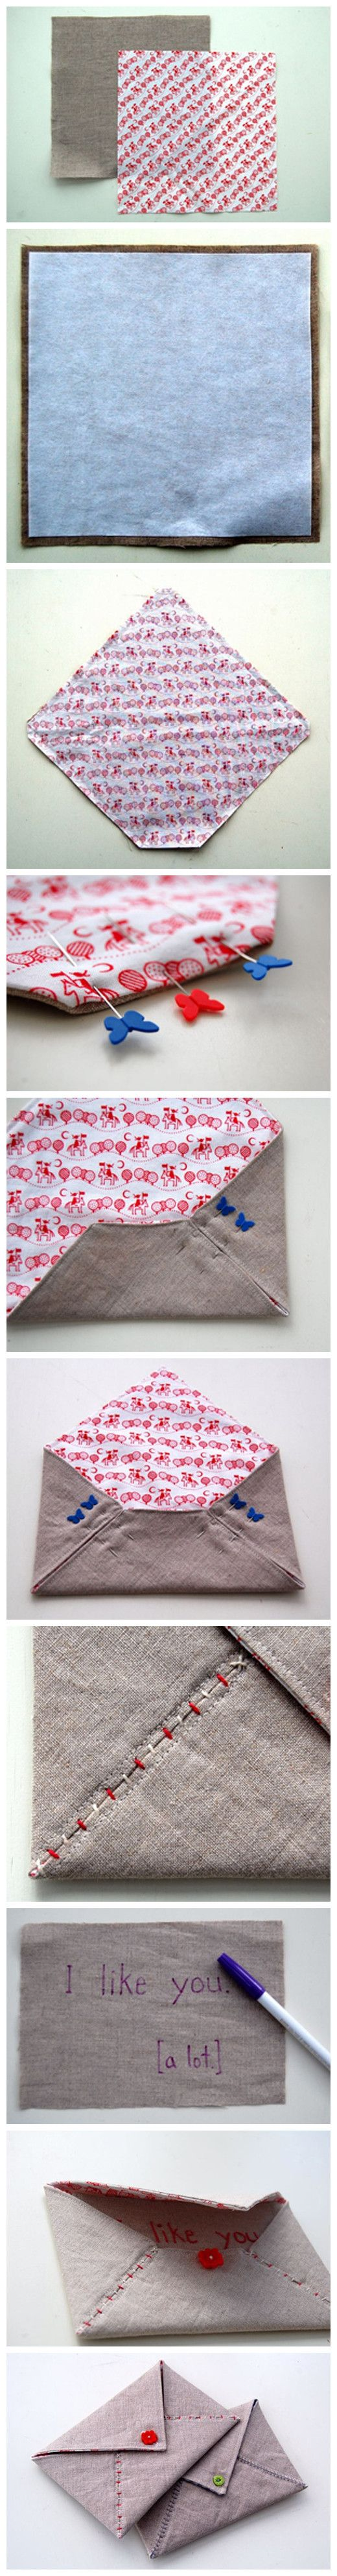 Stitched envelopeProjects, Sewing, Gift, Crafts Ideas, Stitches Envelopes, Crafty, Fabrics Envelopes, Diy, Bags